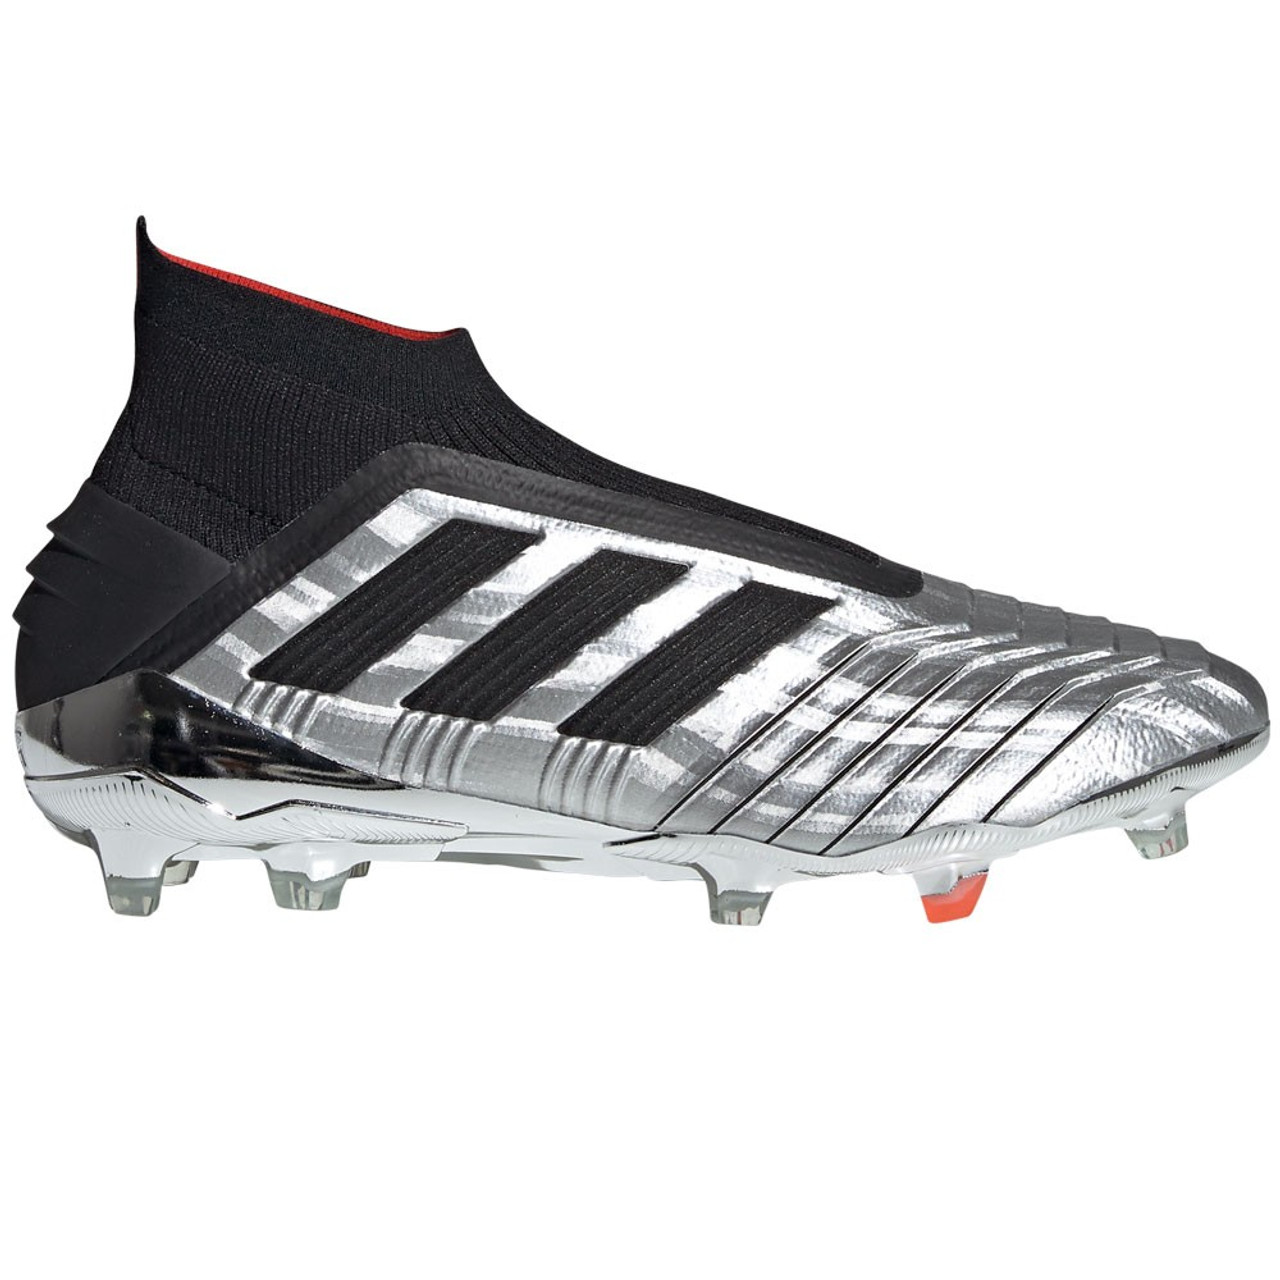 WHAT'S THE POINT? ADIDAS PREDATOR 19+ LACELESS (INITIATOR PACK) REVIEW + ON FEET